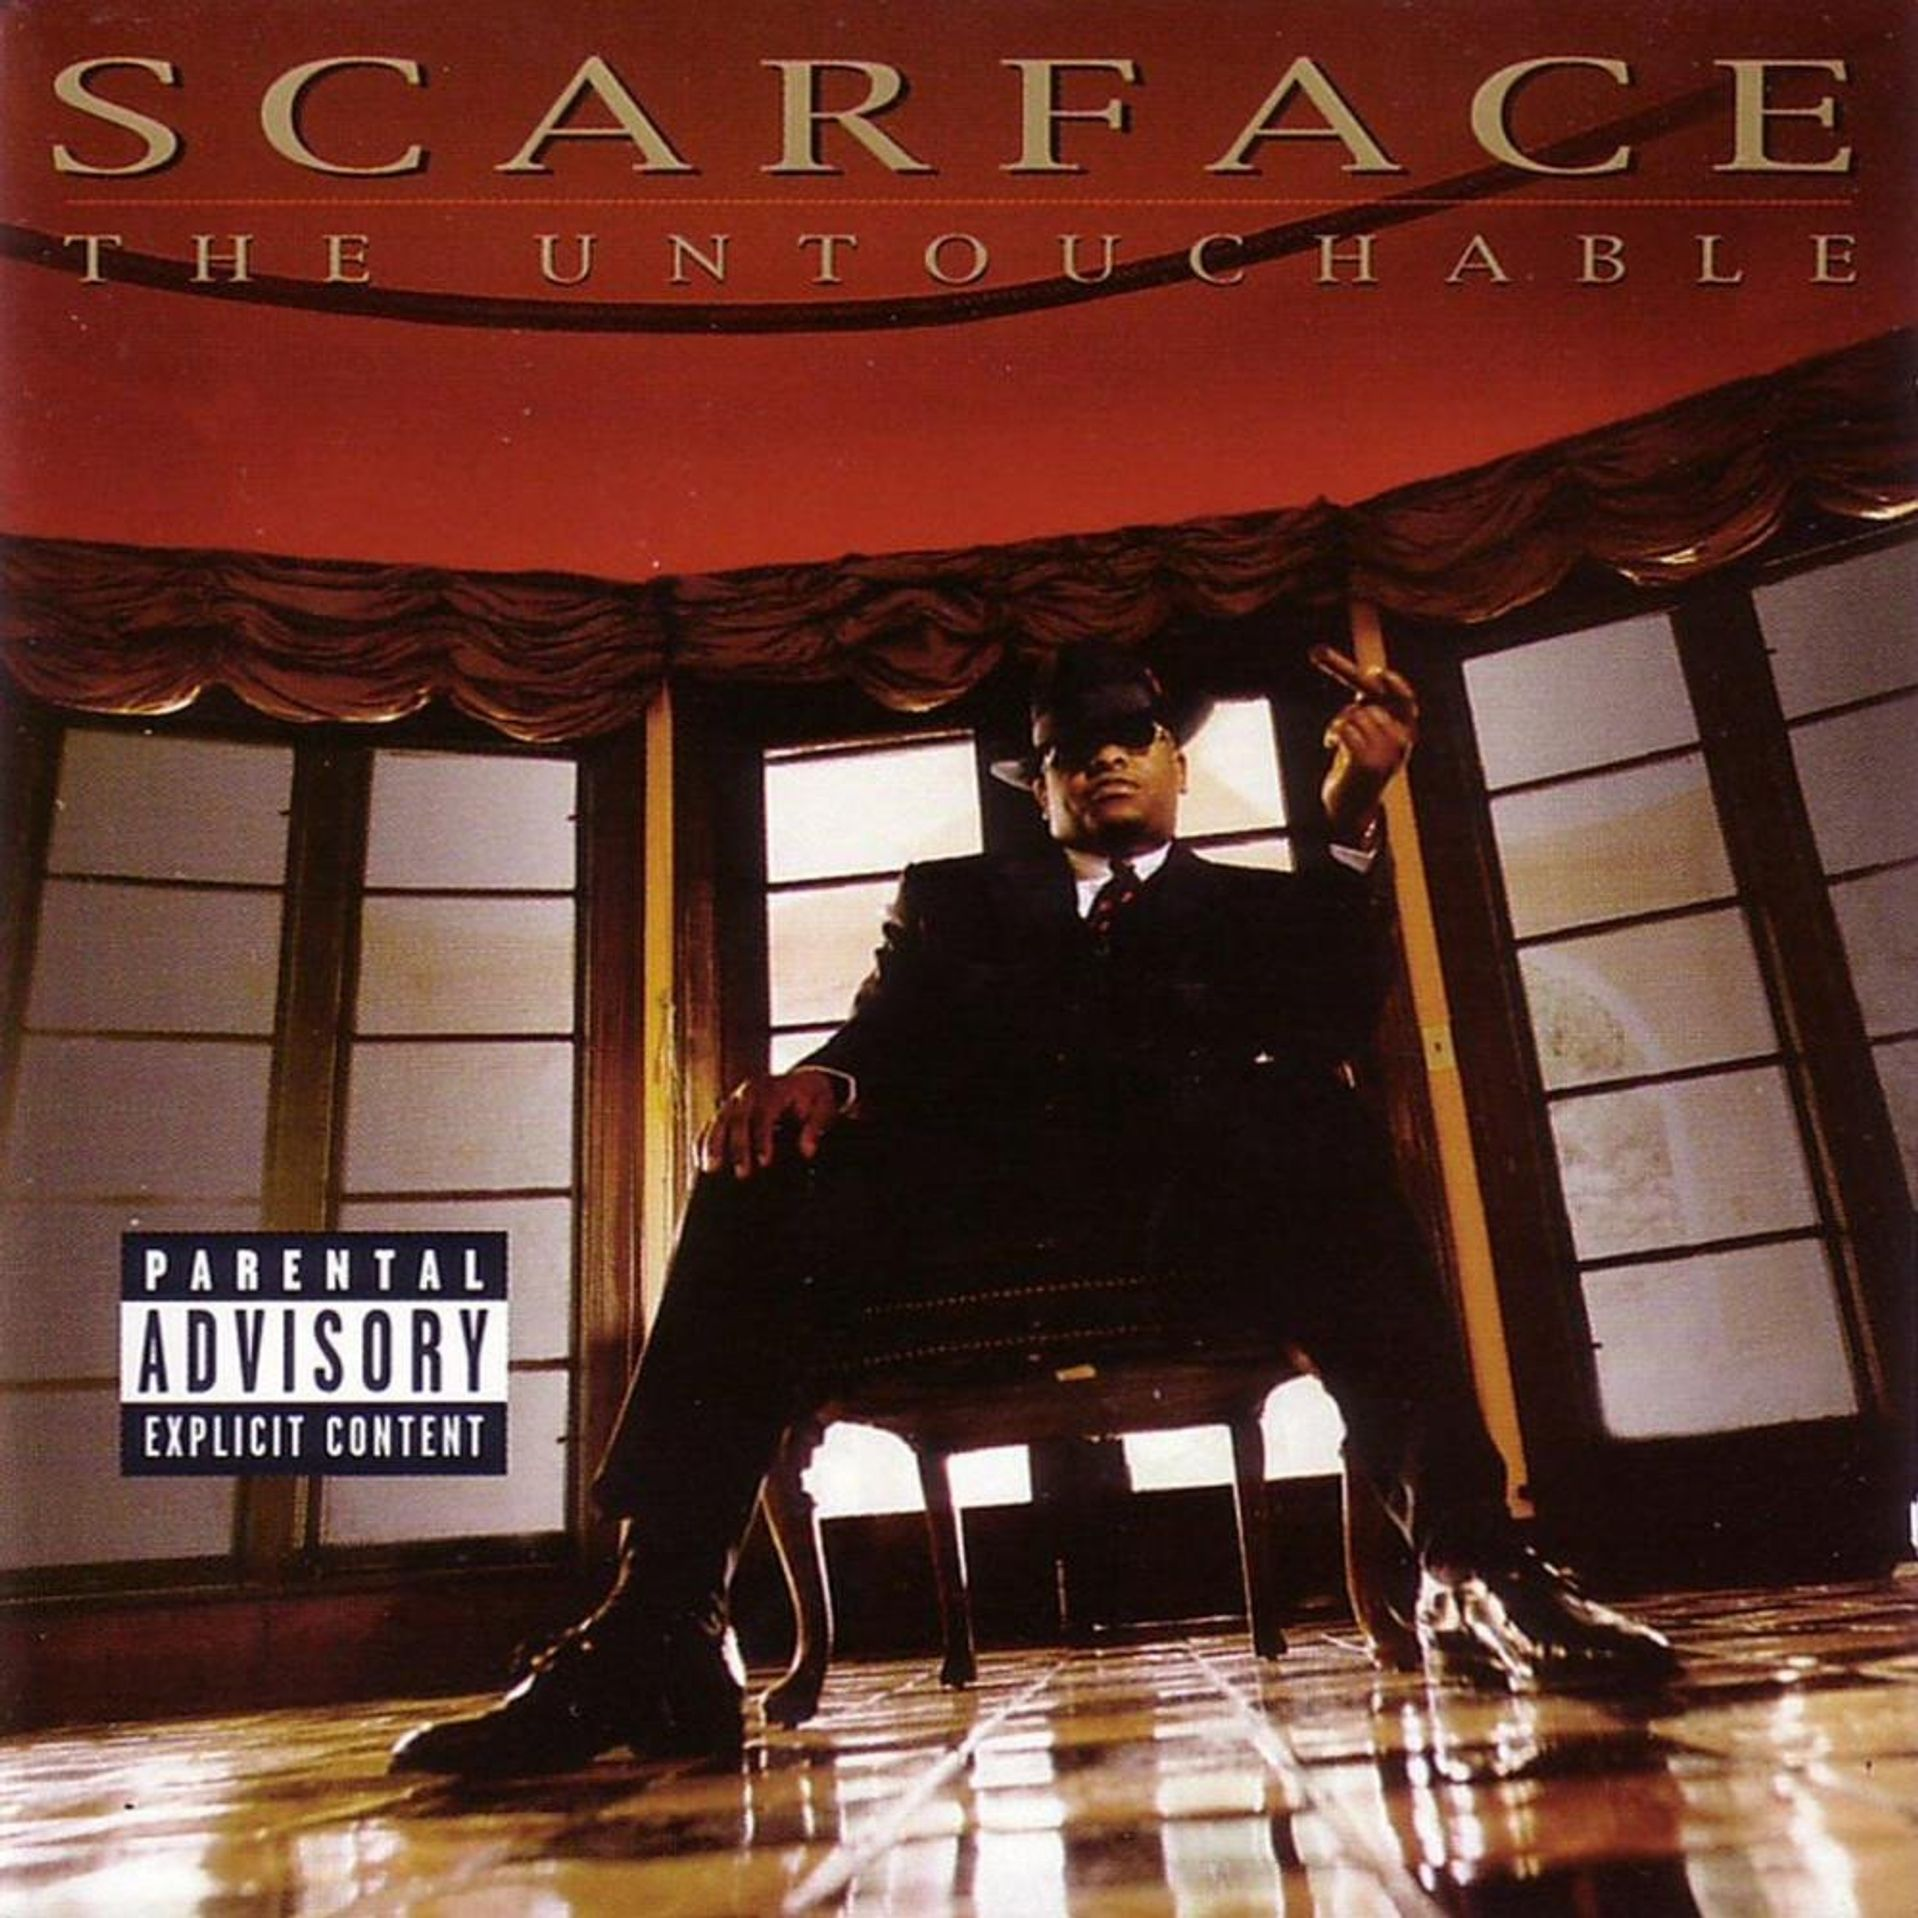 Album Title: The Untouchable by: Scarface